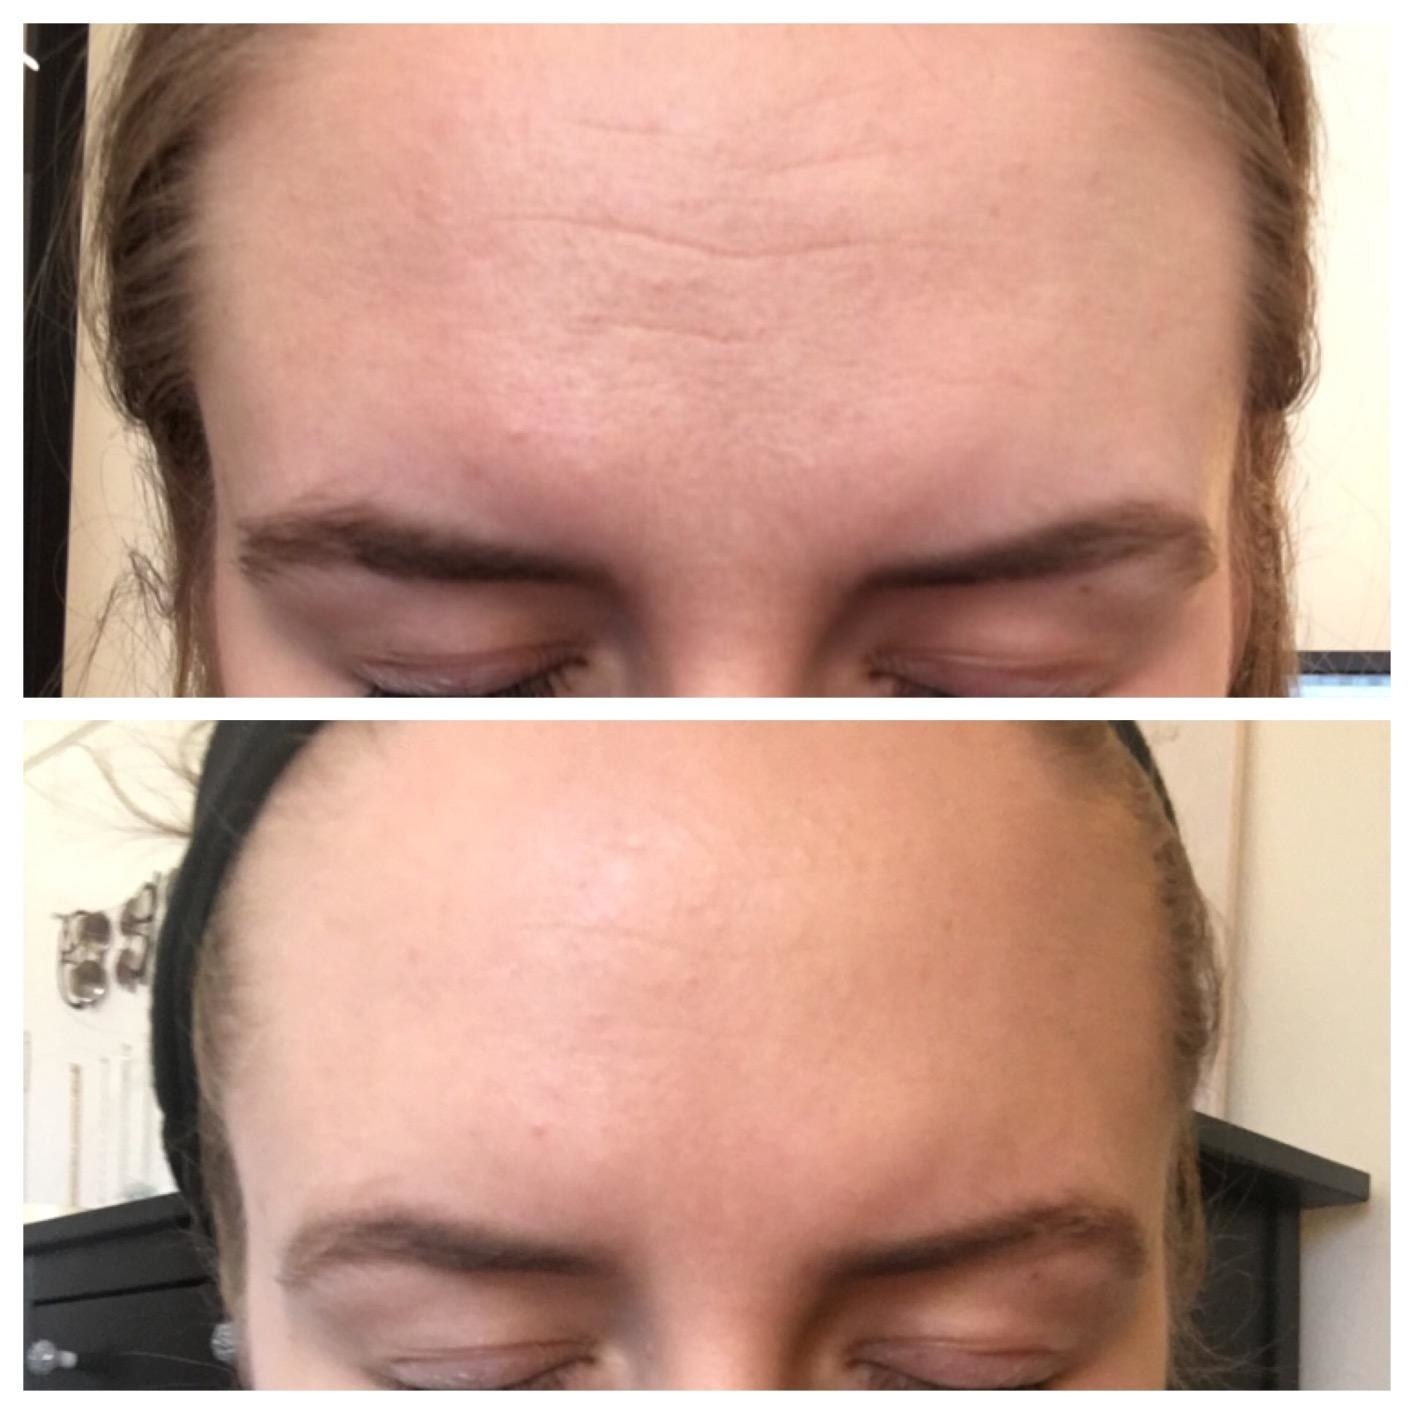 A reviewer's forehead in two images: on top with more pronounced wrinkles, on the bottom with reduced lines